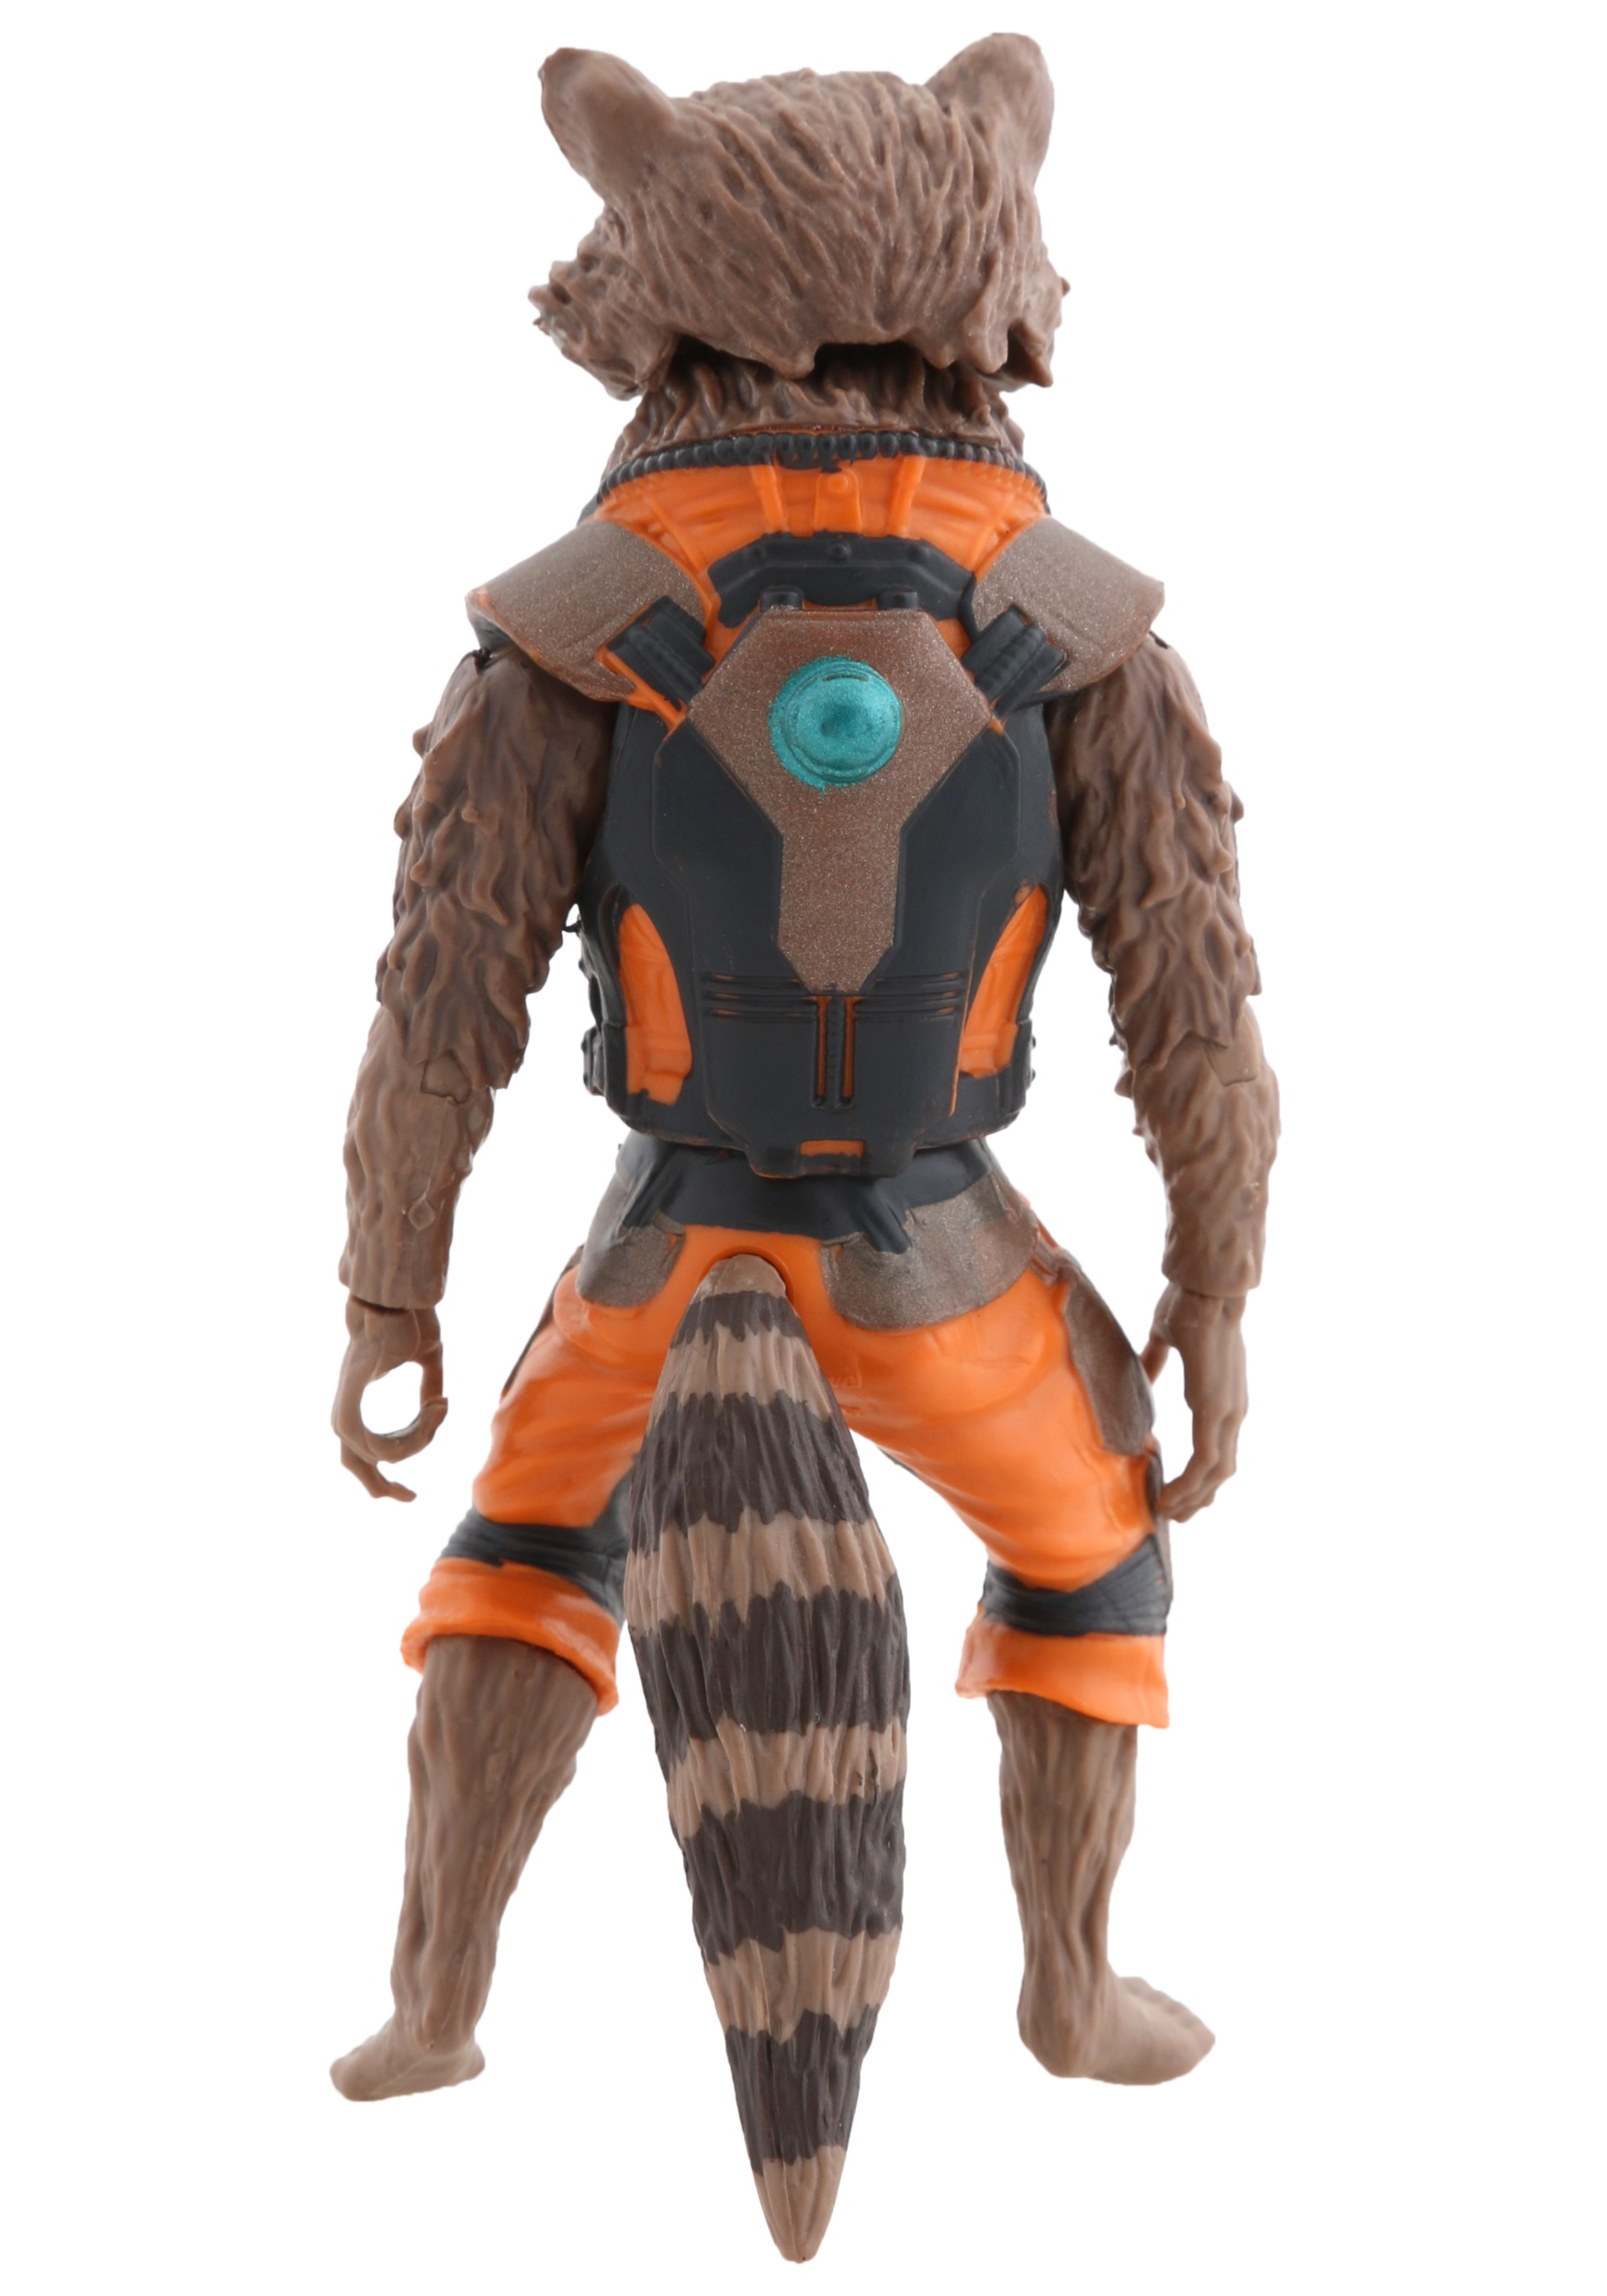 Guardians Of the Galaxy Legends Rocket Raccoon Figure